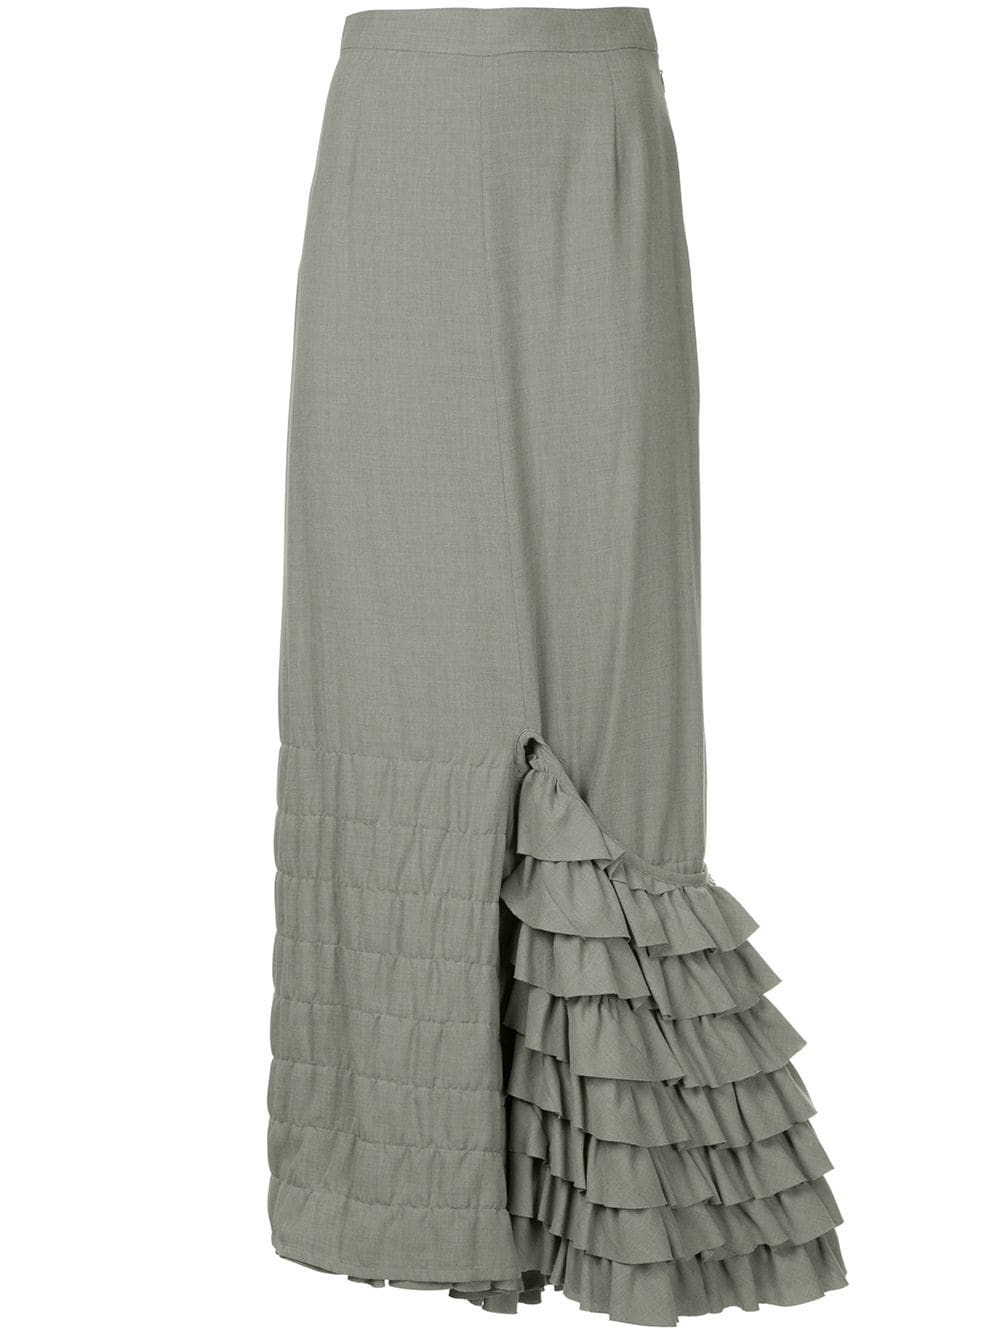 0d0932ac4df5d junya-watanabe-comme-des-garcons-vintage-quilted-long-skirt-grey-farfetch-com-photo.jpg?1544761901